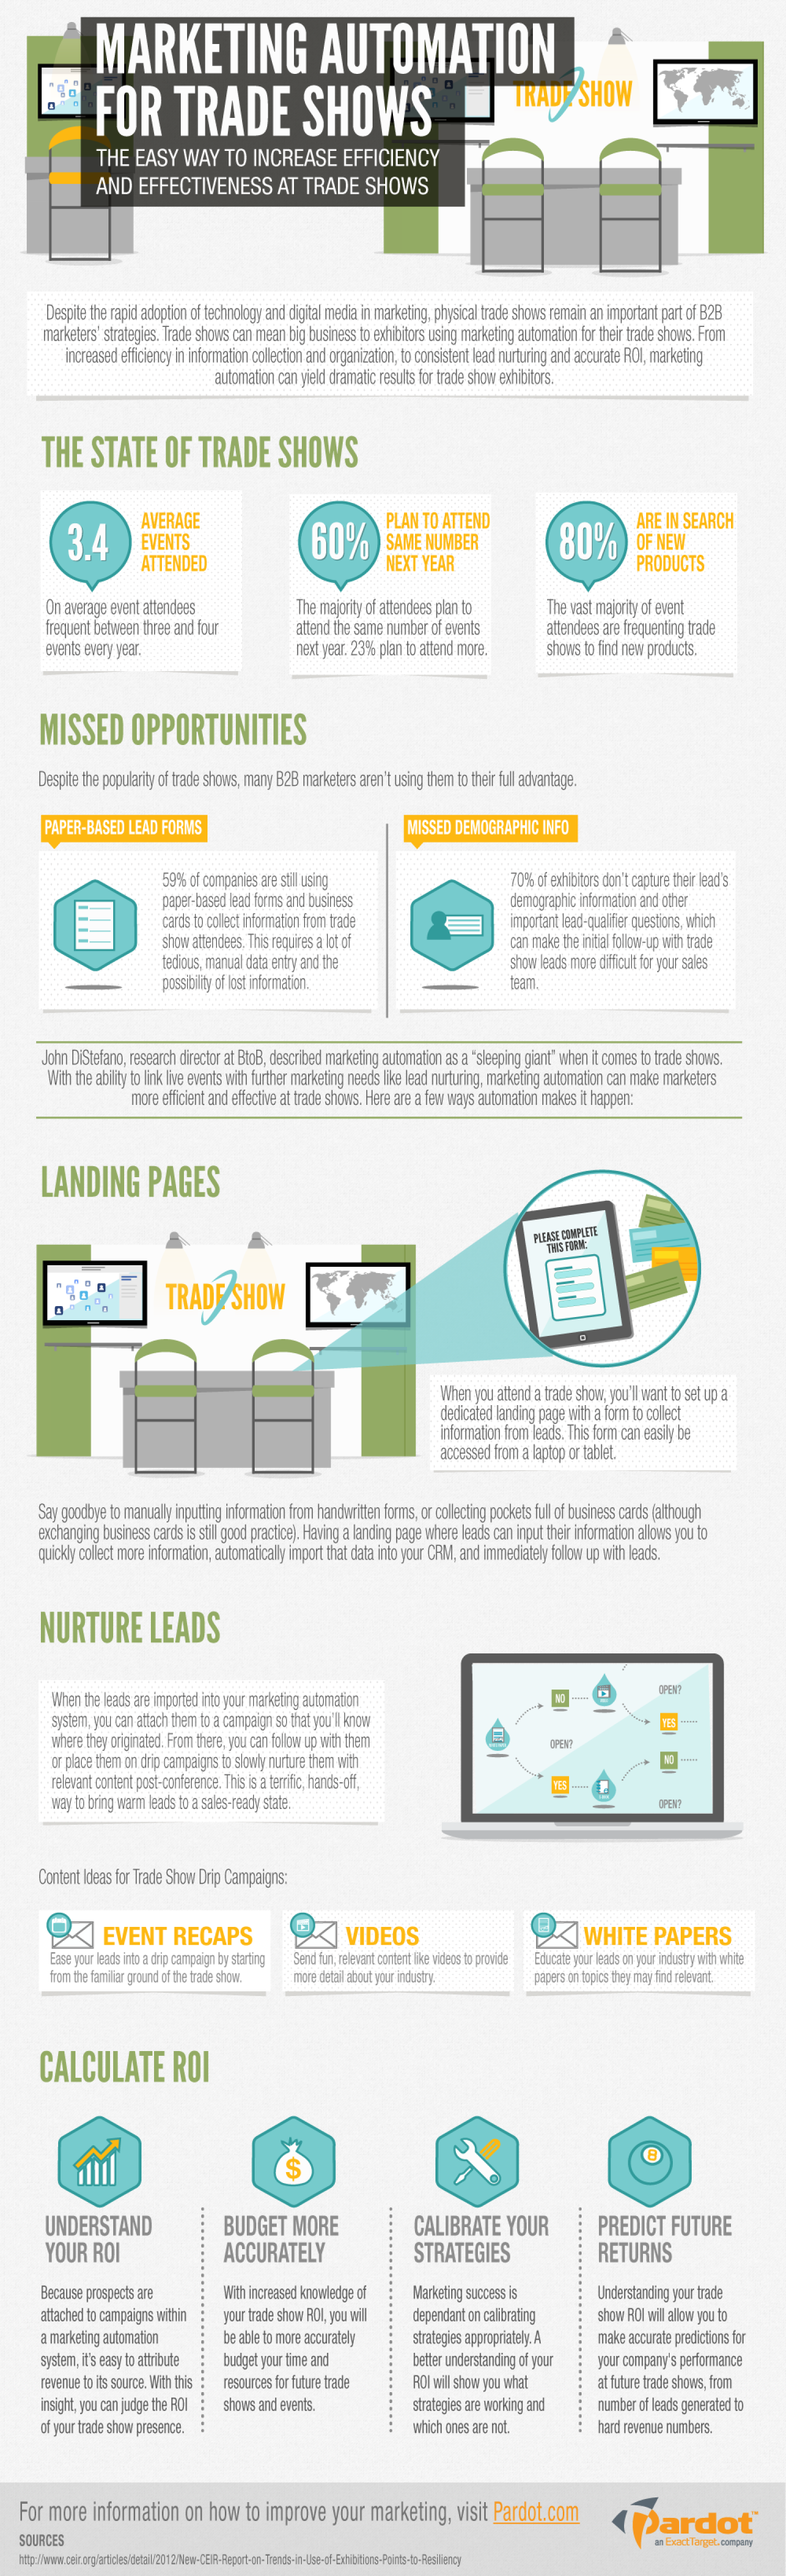 Marketing Automation for Trade Shows Infographic